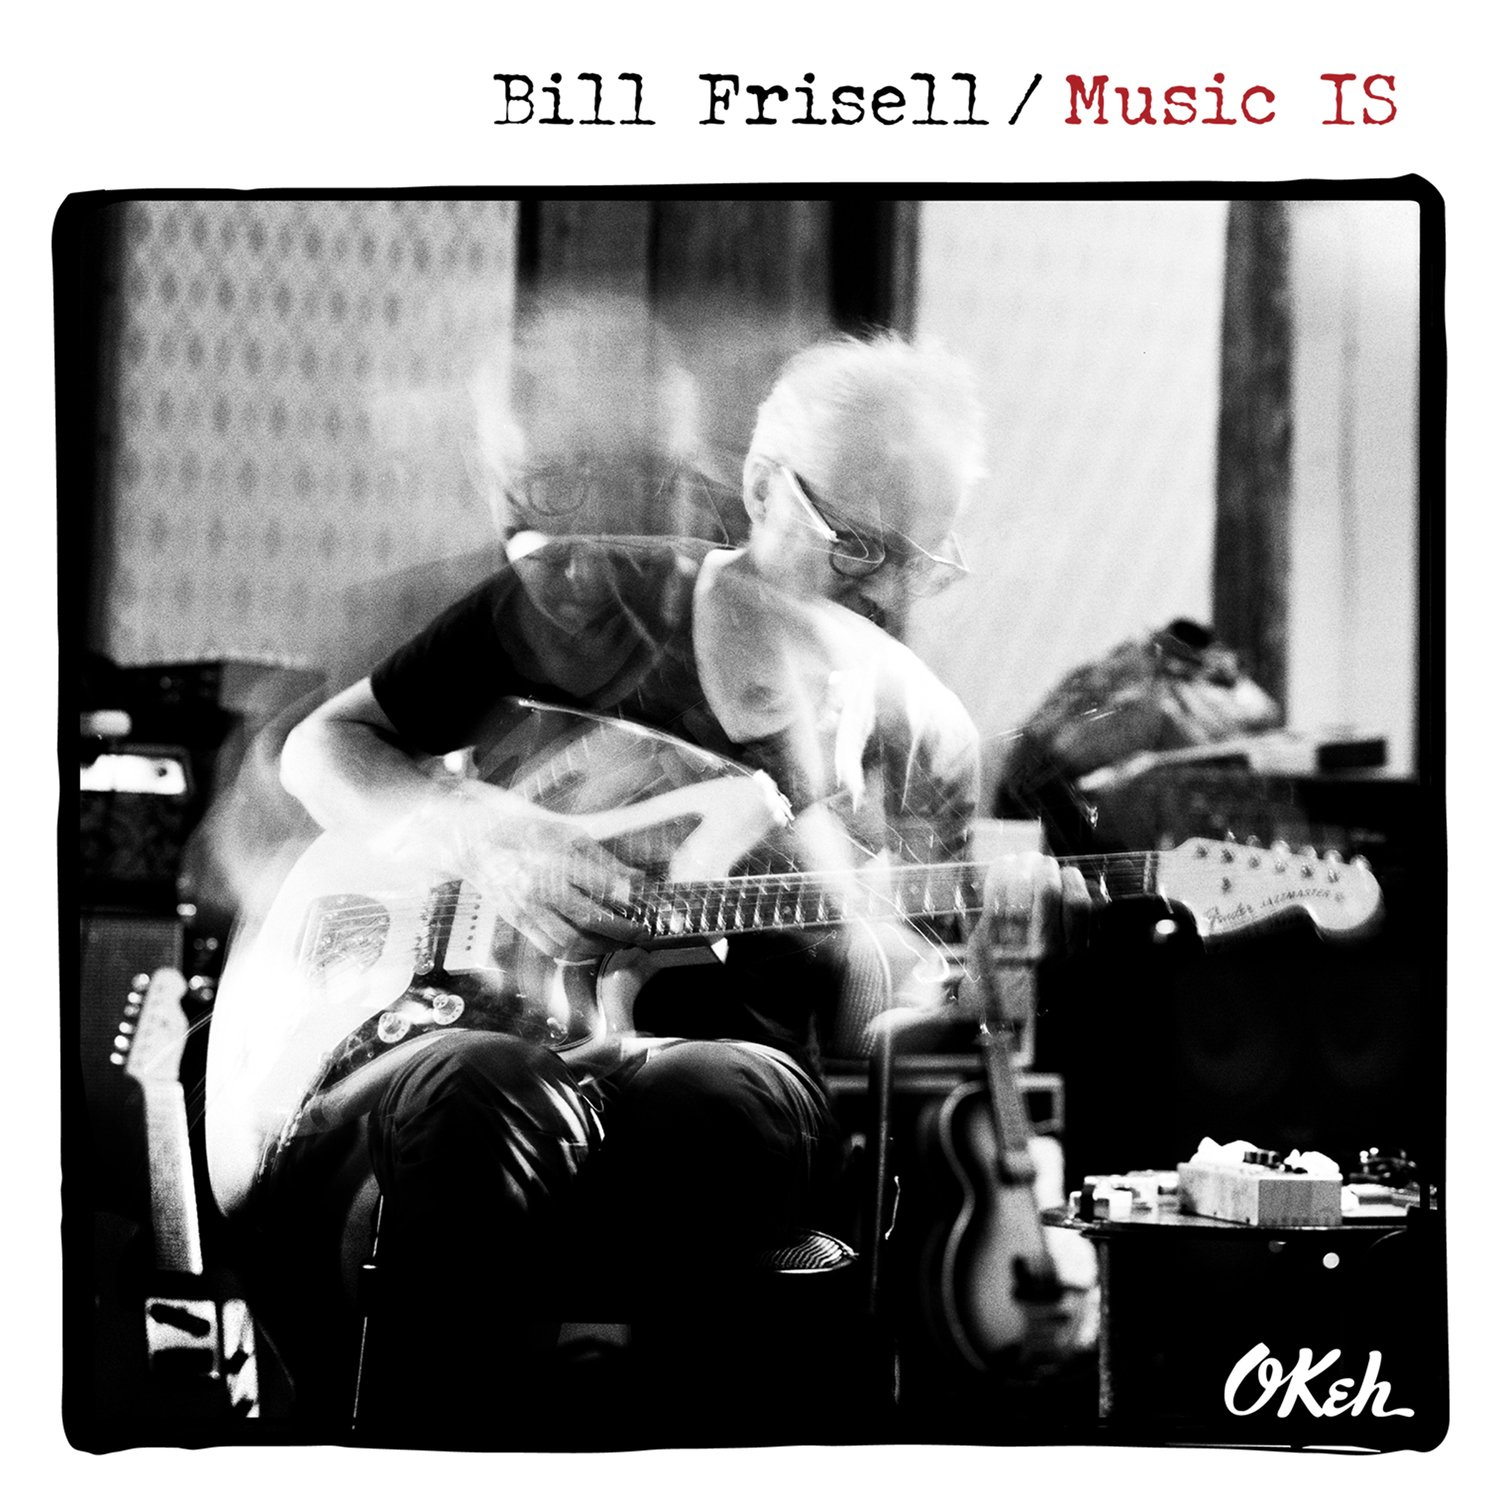 「bill frisell music is」の画像検索結果